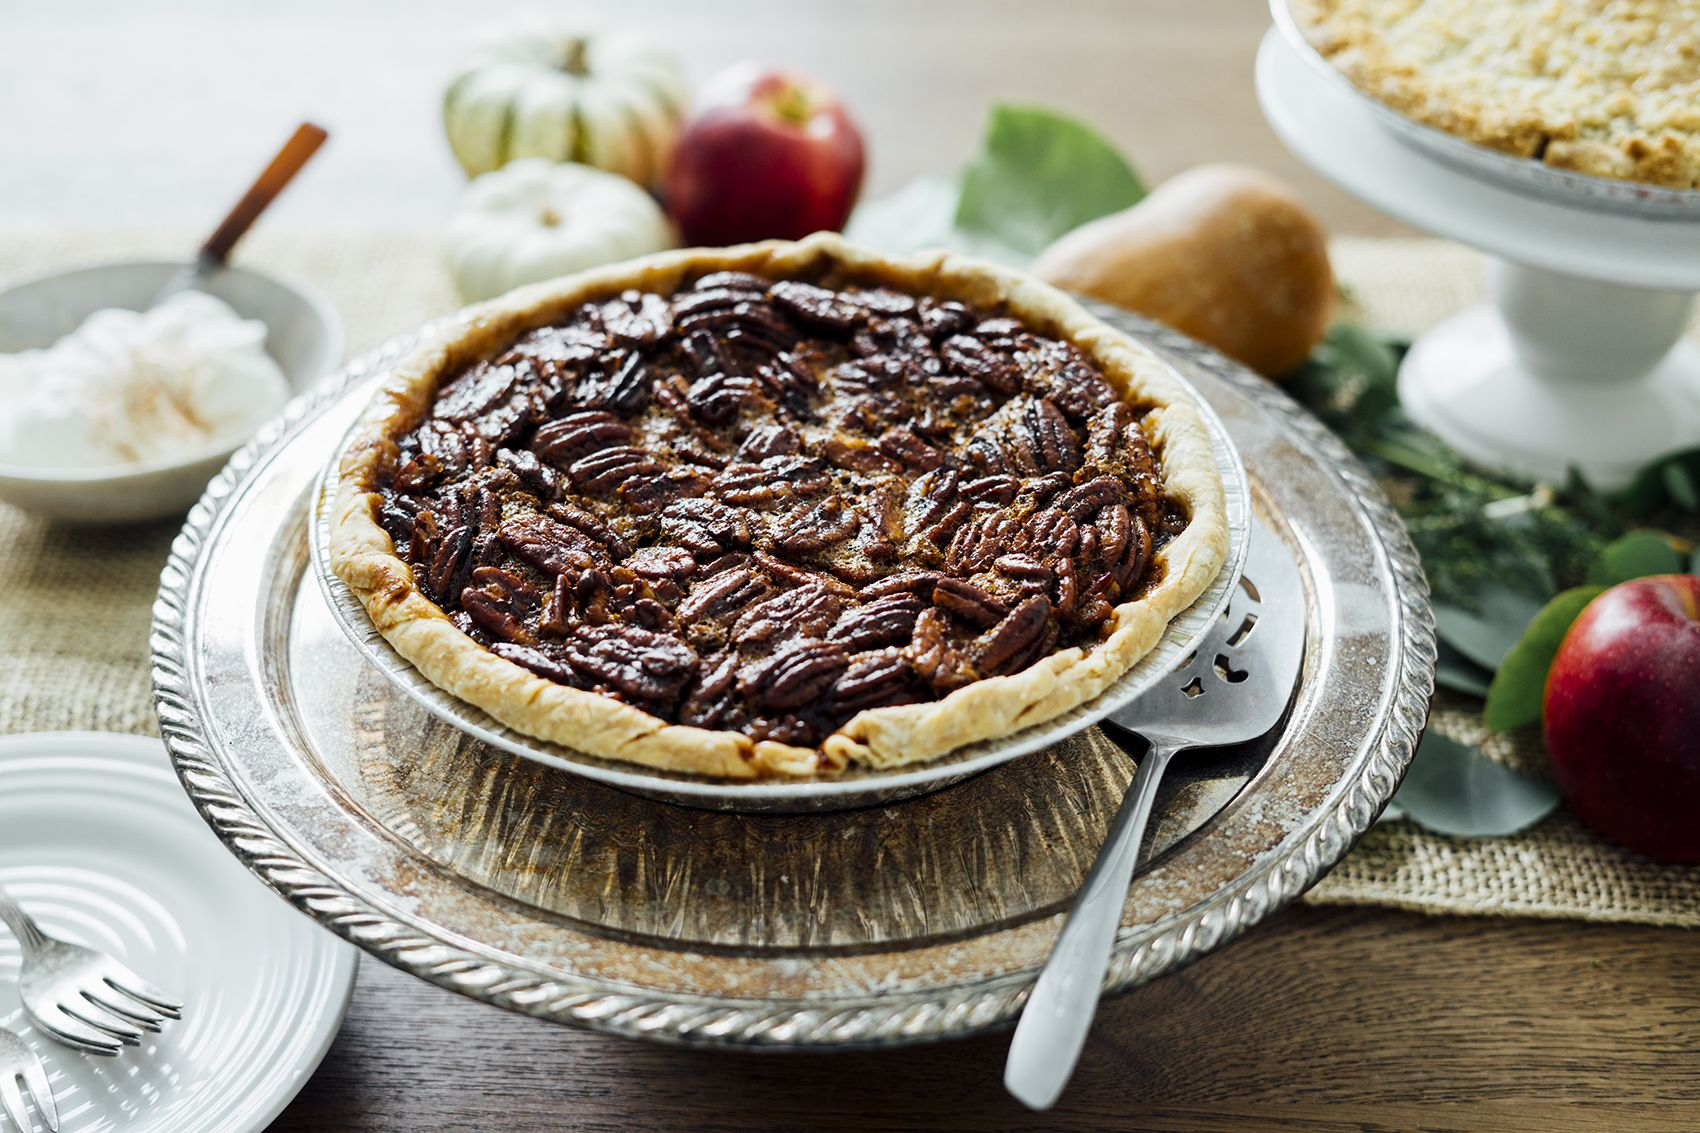 Thanksgiving Turkey, Sides and Pies Whole food recipes